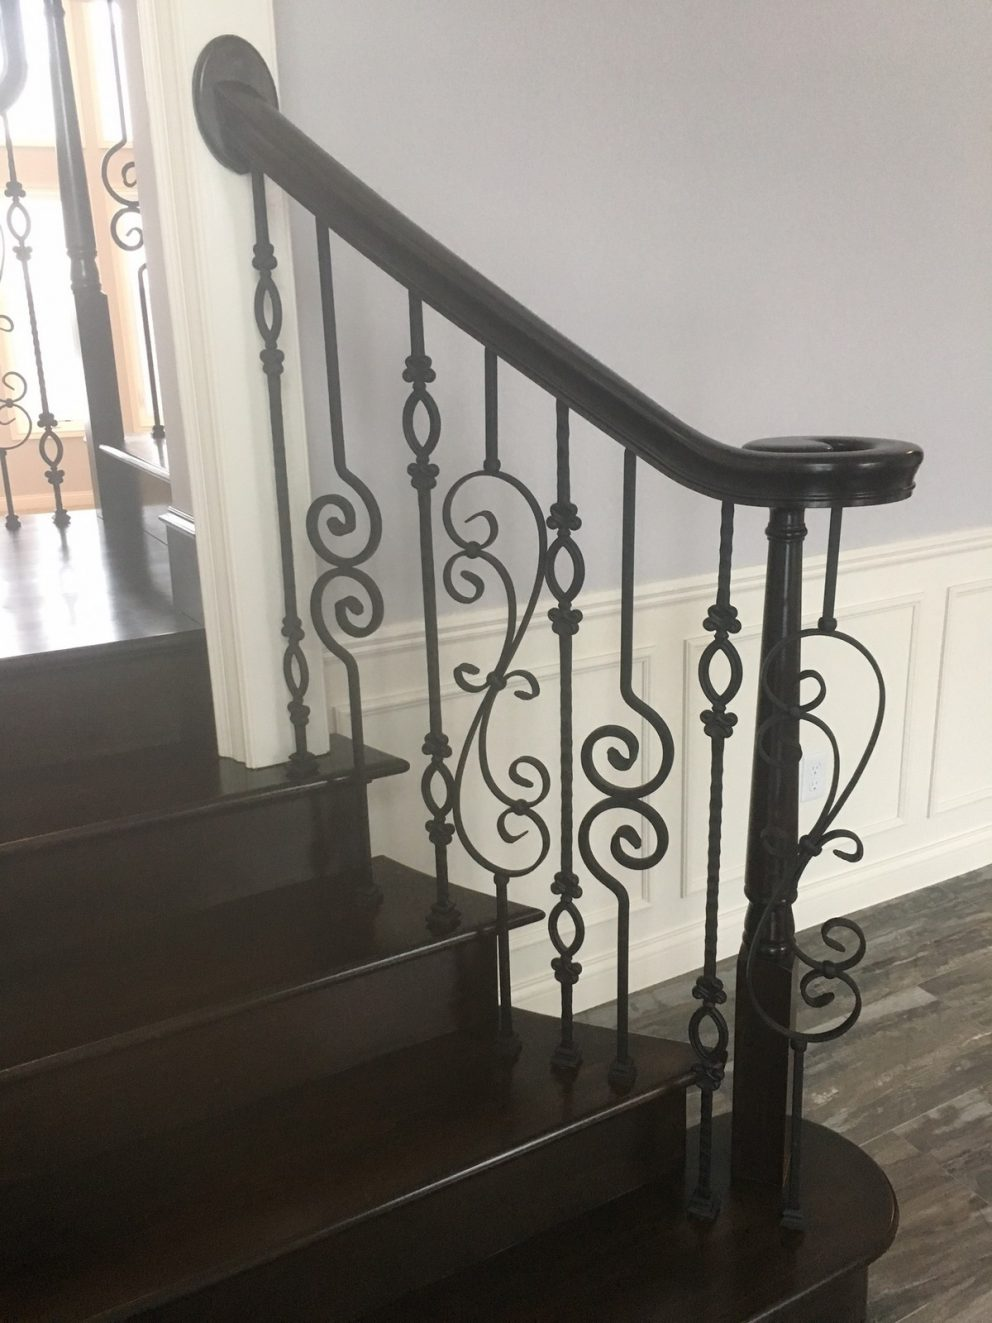 Staircase landing showing off the decorative rod iron spindles and full wood finish